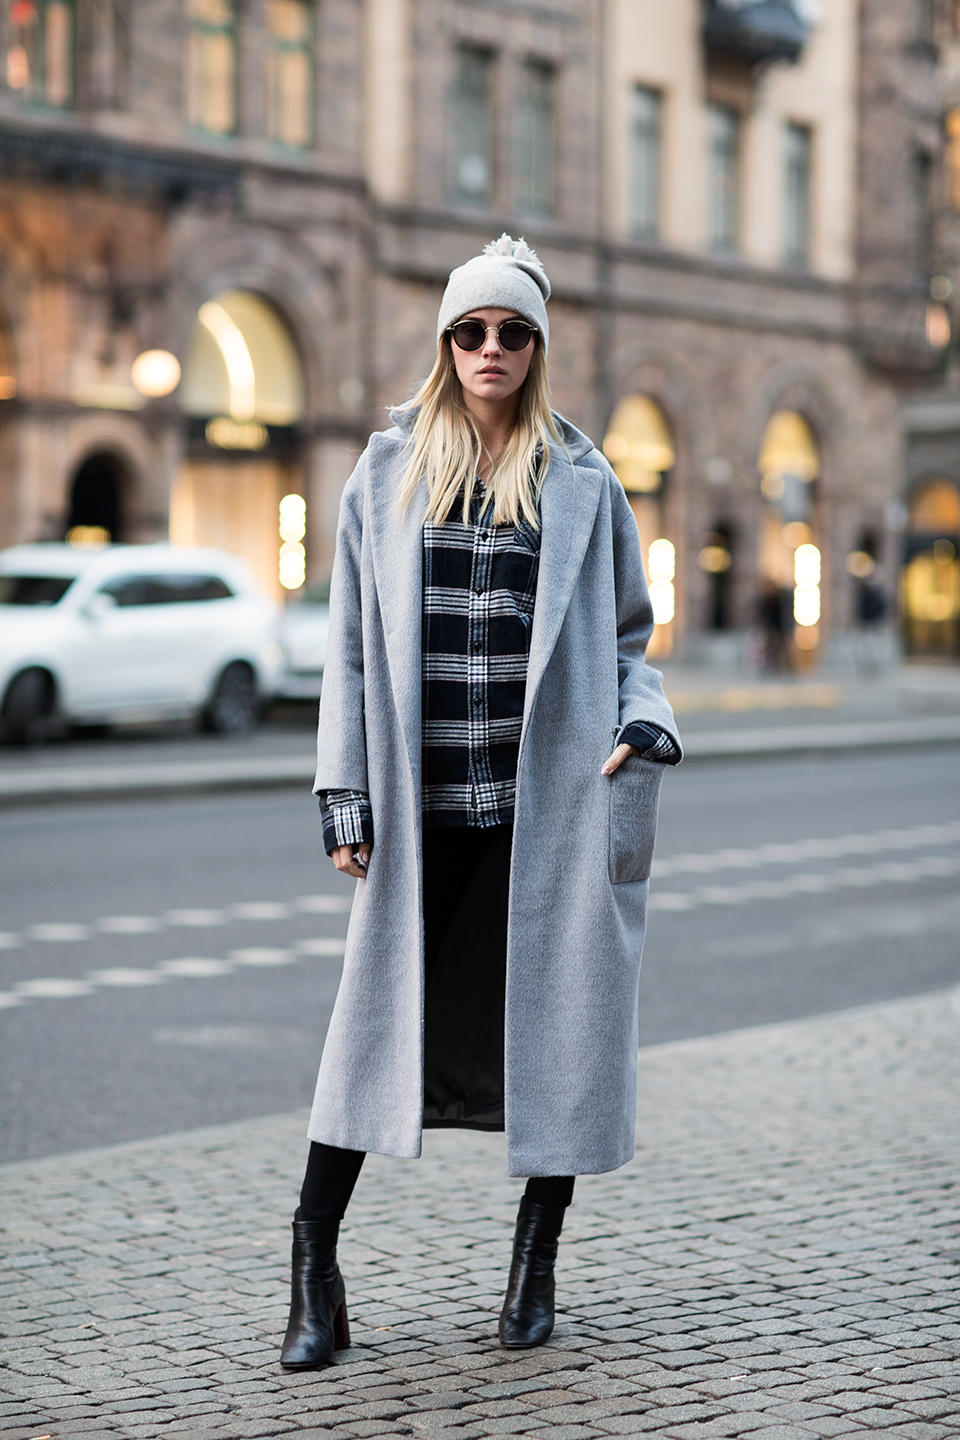 Pale coloured maxi coats are always a good idea because of their versatility. Elsa Ekman wears this pale grey coat with a classic plaid shirt and jeans; adding class and sophistication to an otherwise casual outfit. Coat Topshop, Shirt Vintage, Jeans Cheap Monday, Shoes Topshop, Beanie Balmuir.